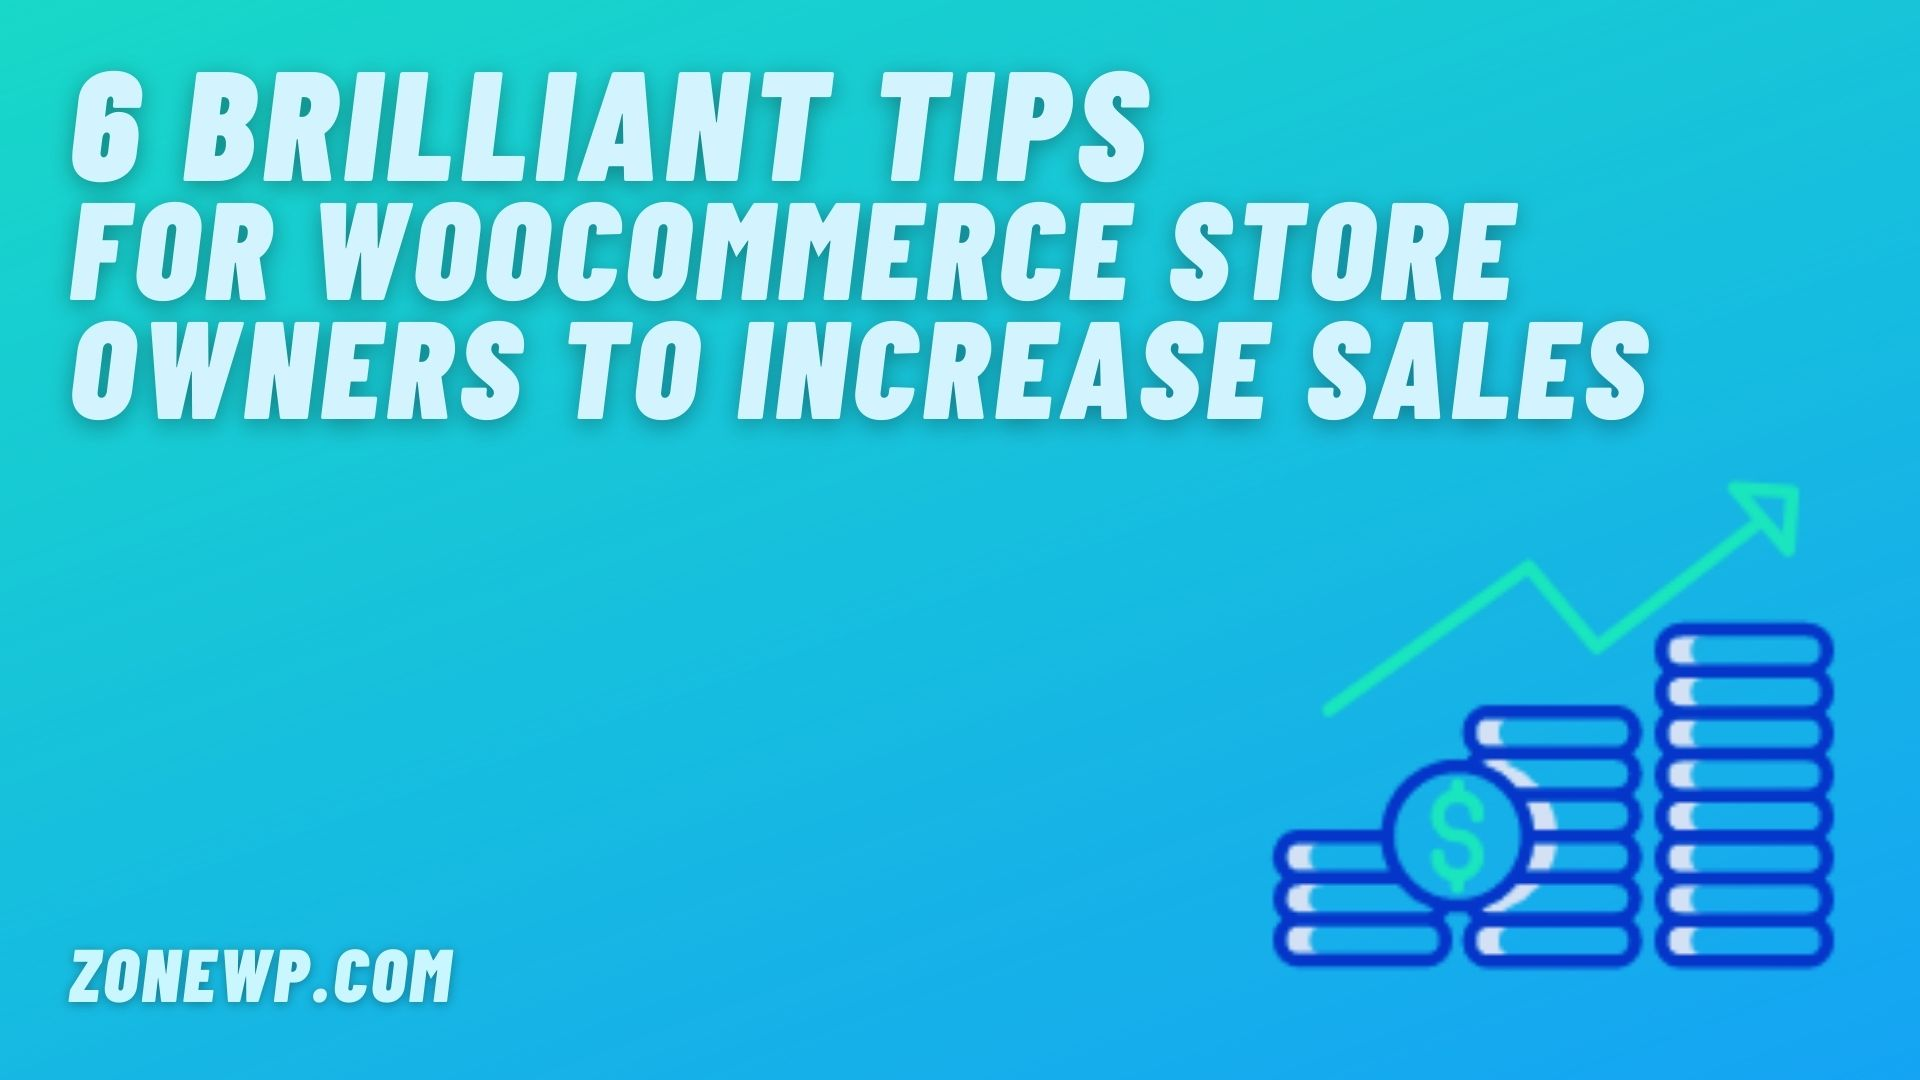 6 Brilliant Tips for WooCommerce Store Owners to Increase Sales